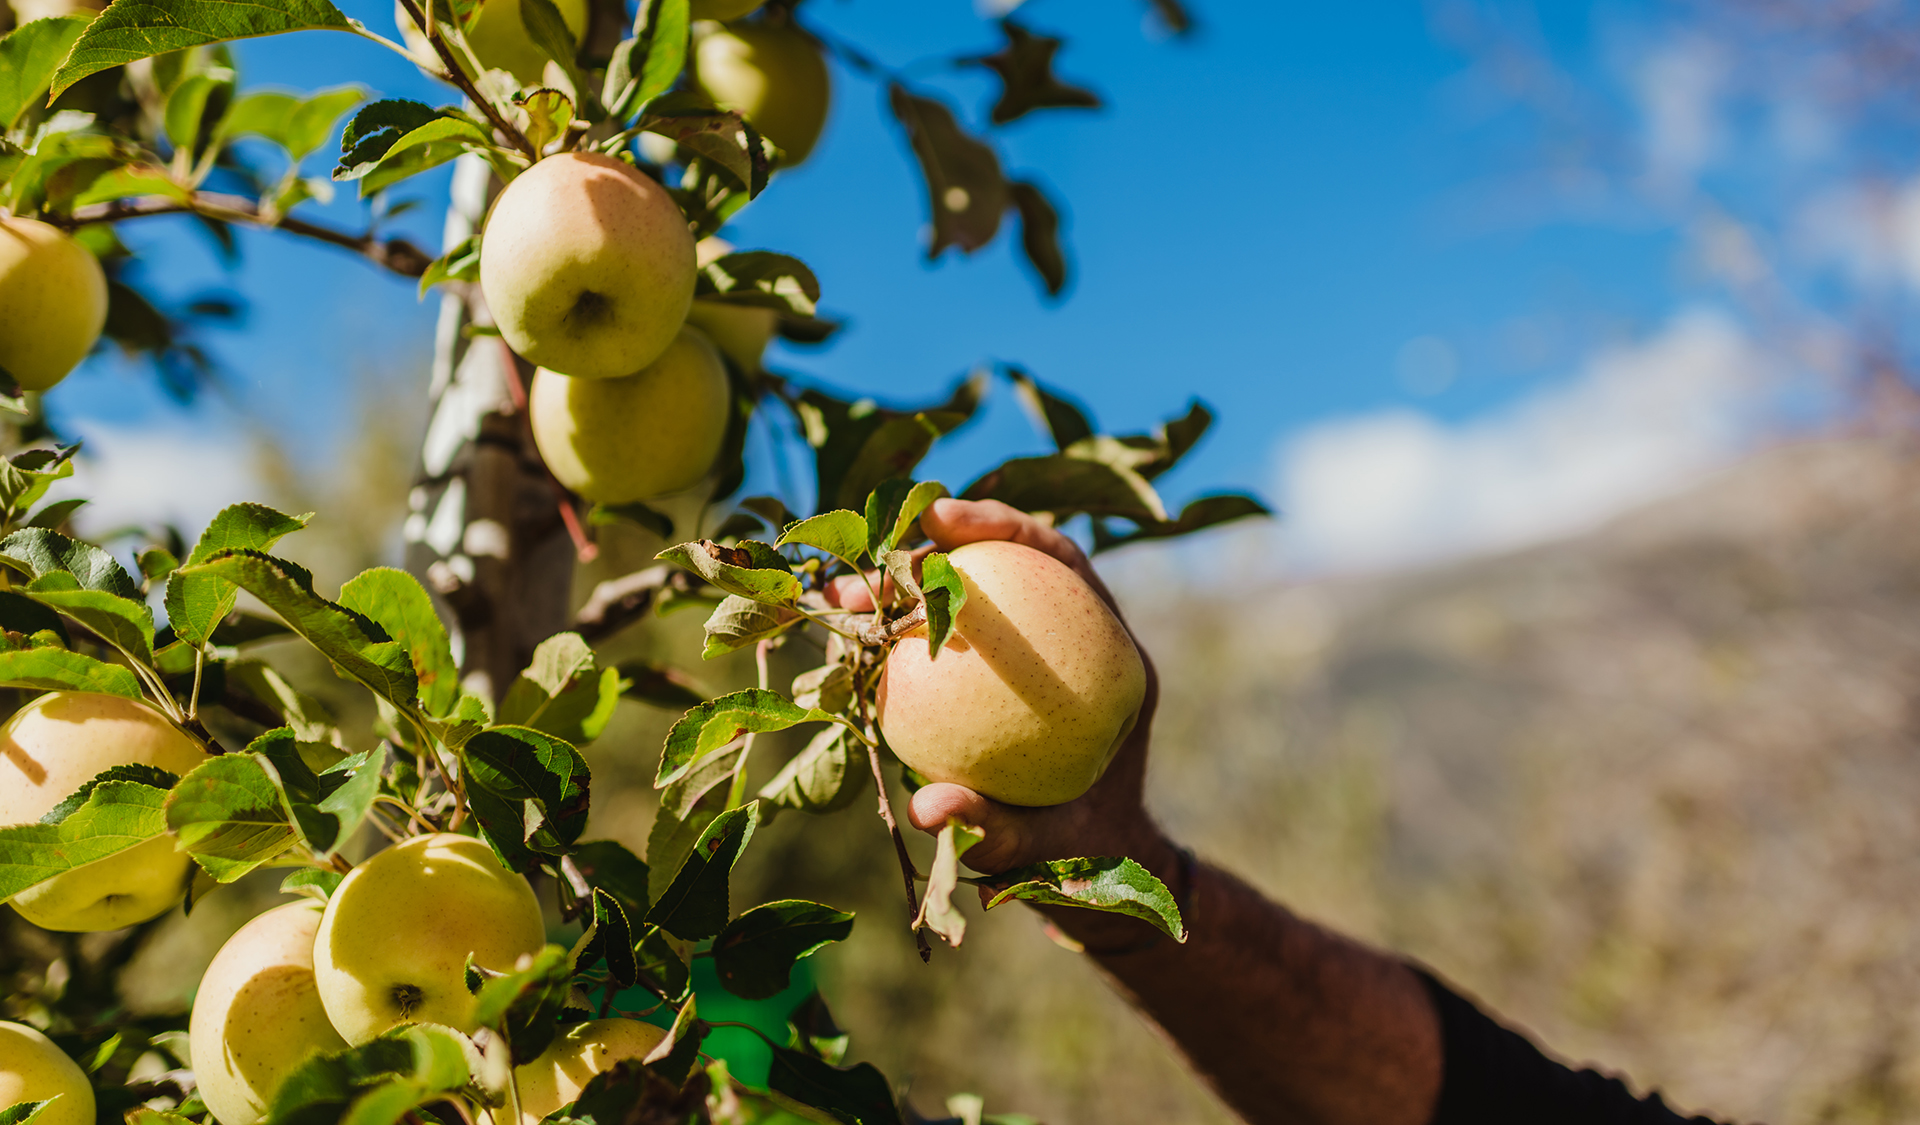 Val Venosta has become one of the leading production areas of organic apples in Europe in terms of both quantity and product quality.